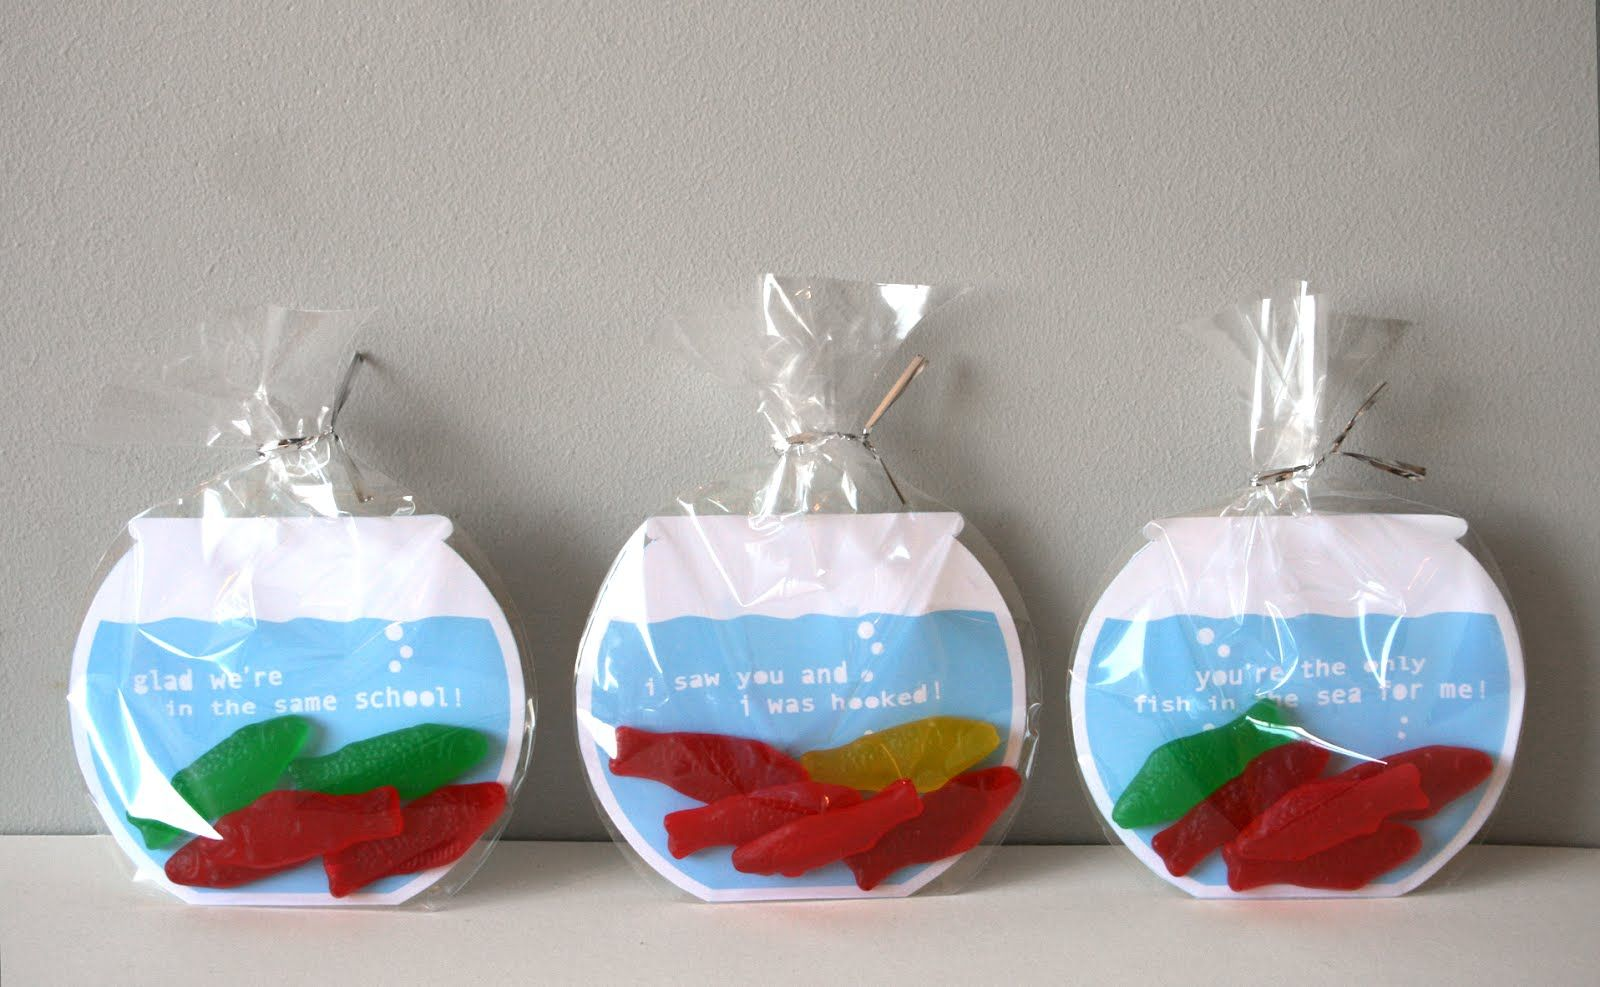 Cute idea for a silly romantic thing to give Chris when we are fishing!